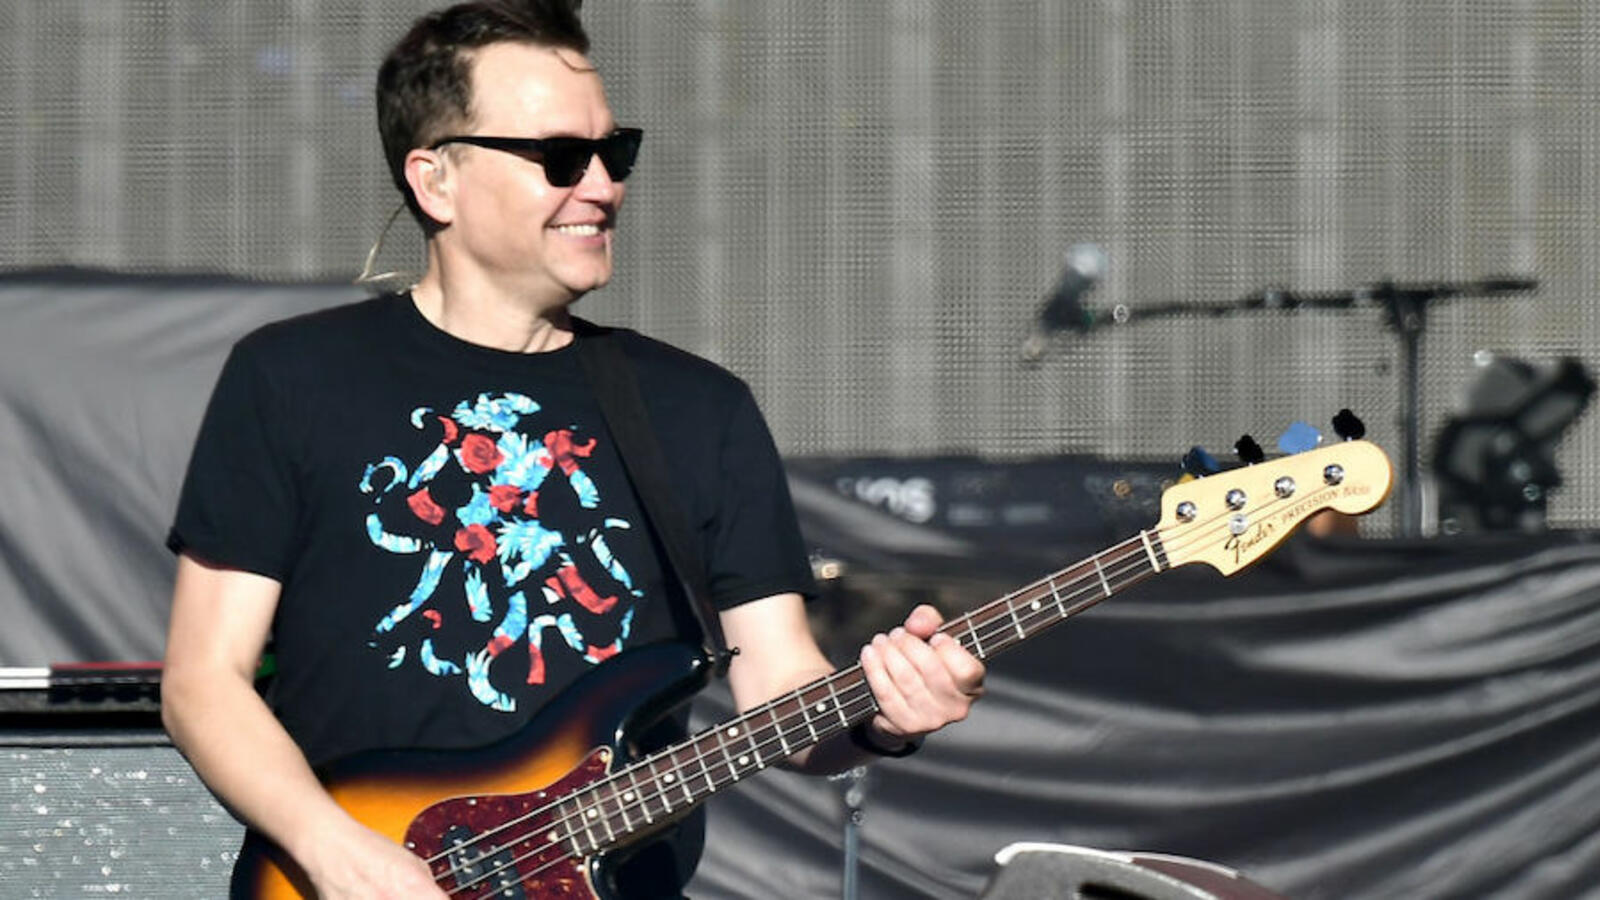 Mark Hoppus Reveals His Hair Is Growing Back White After Chemo: See The Pic